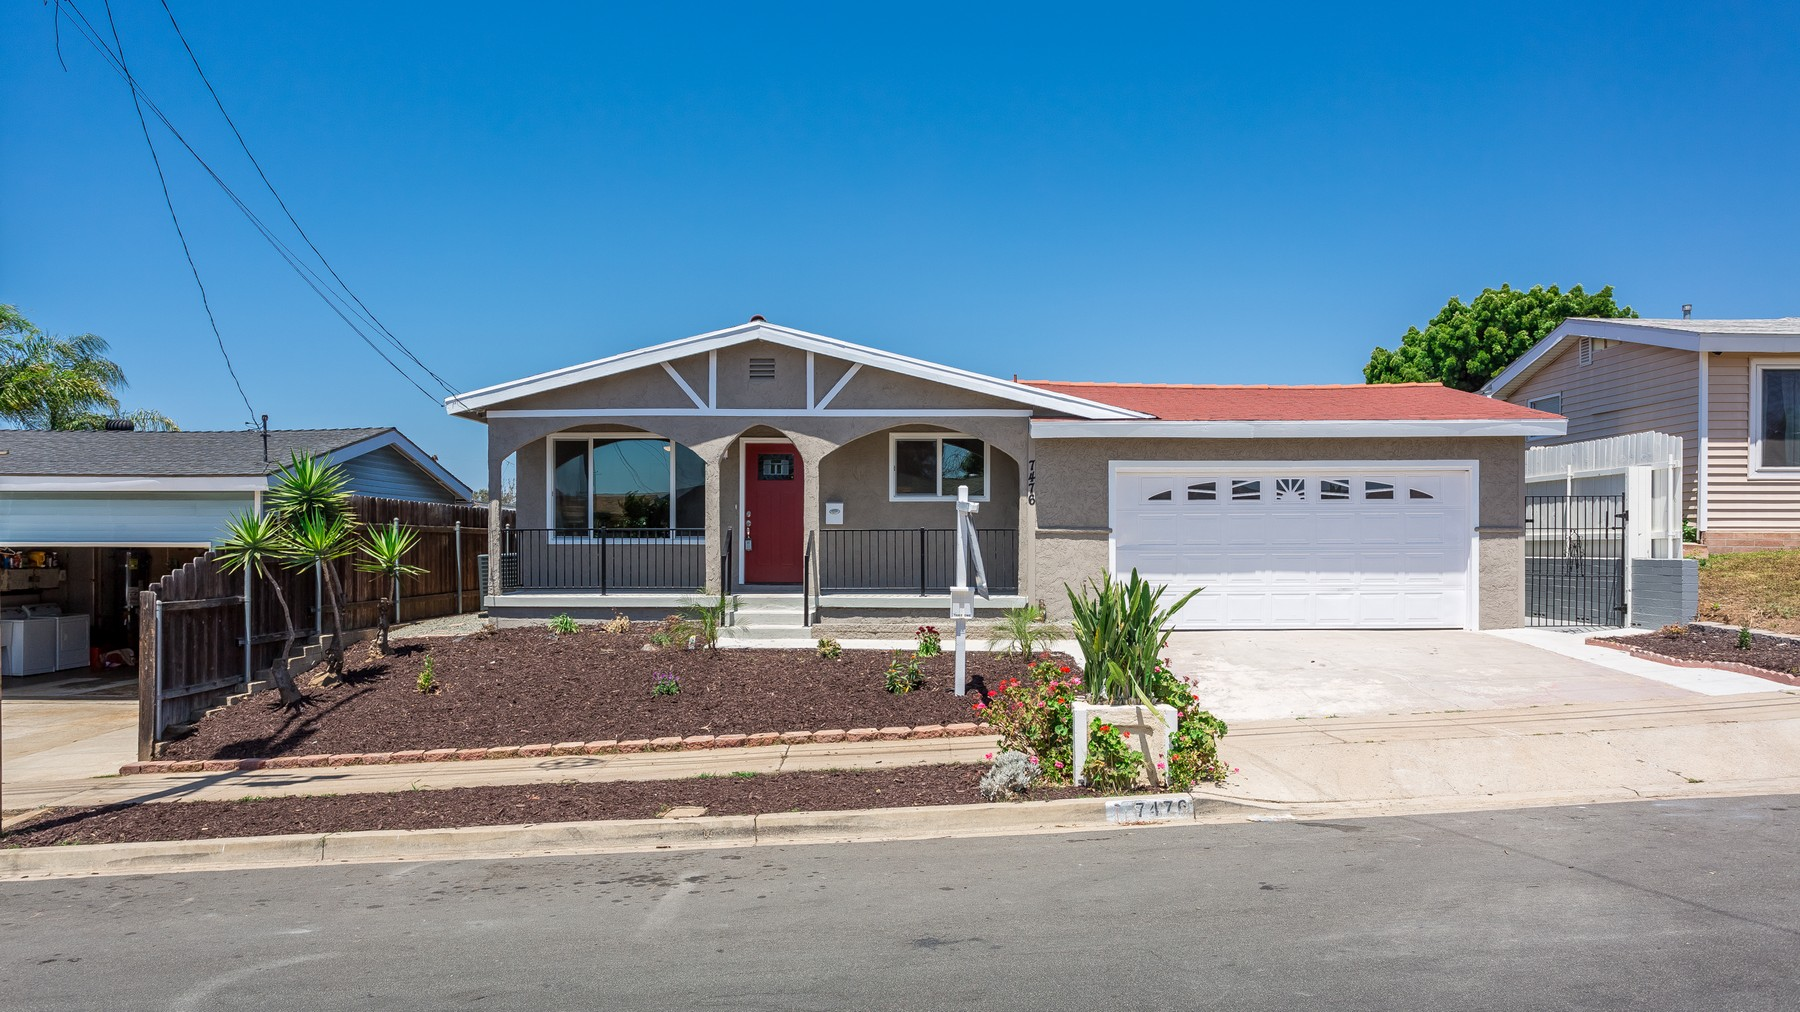 Single Family Home for Sale at 7476 Salizar Street San Diego, California, 92111 United States